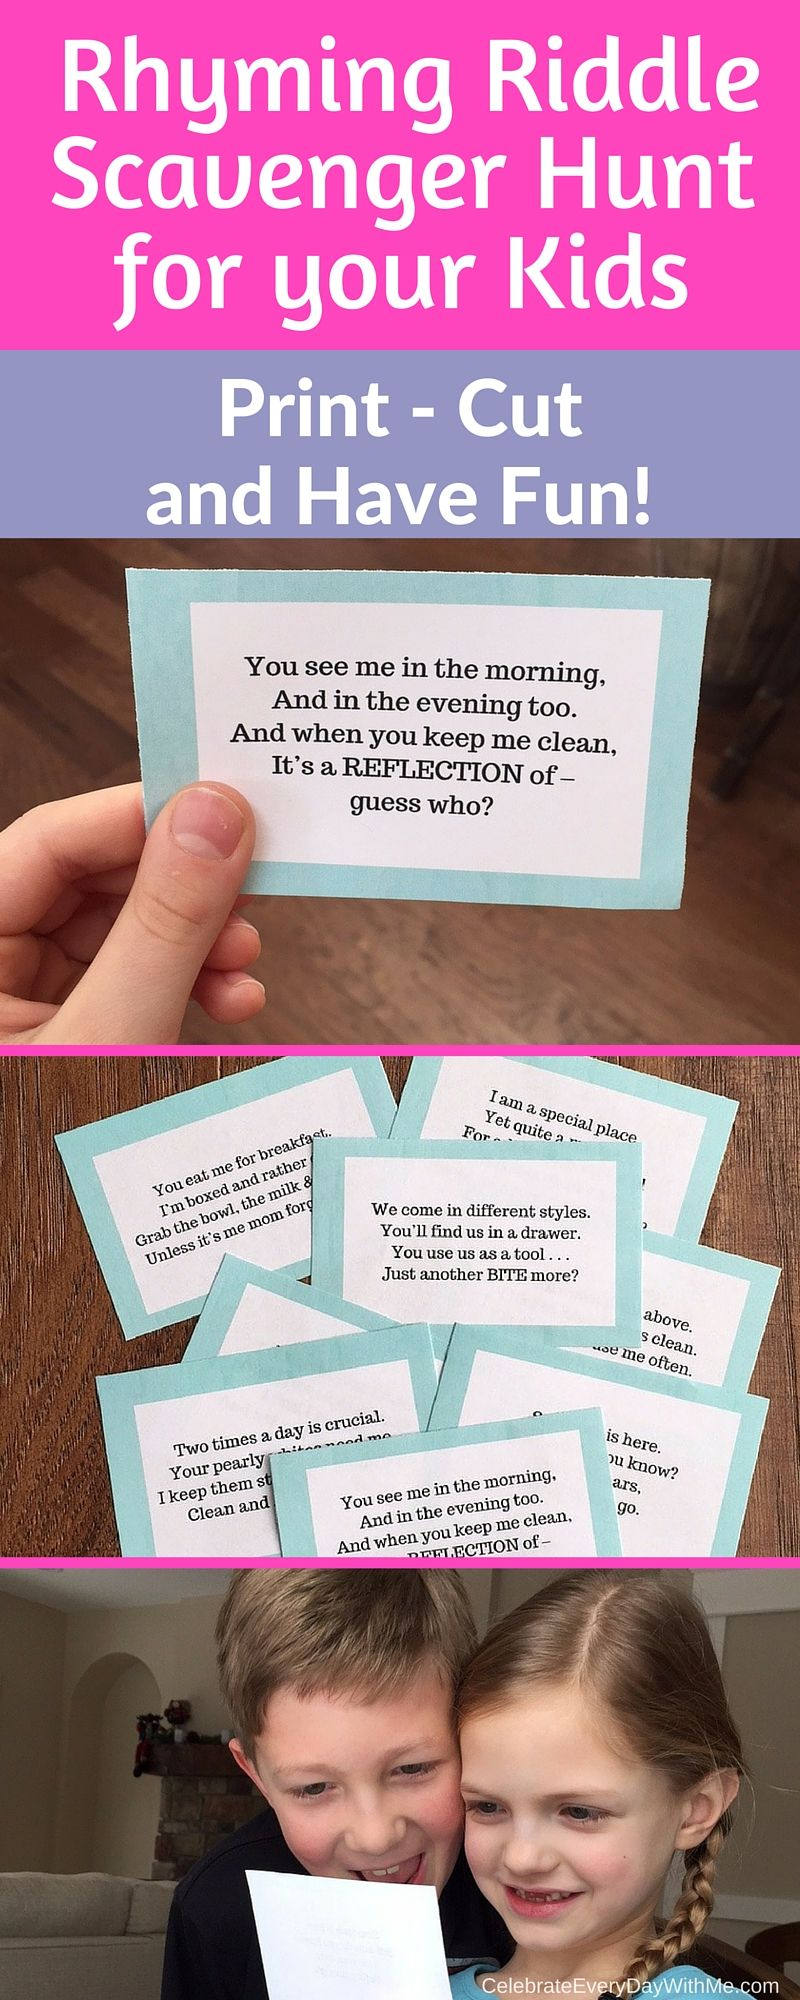 Rhyming Riddle Scavenger Hunt for your kids. Print, cut